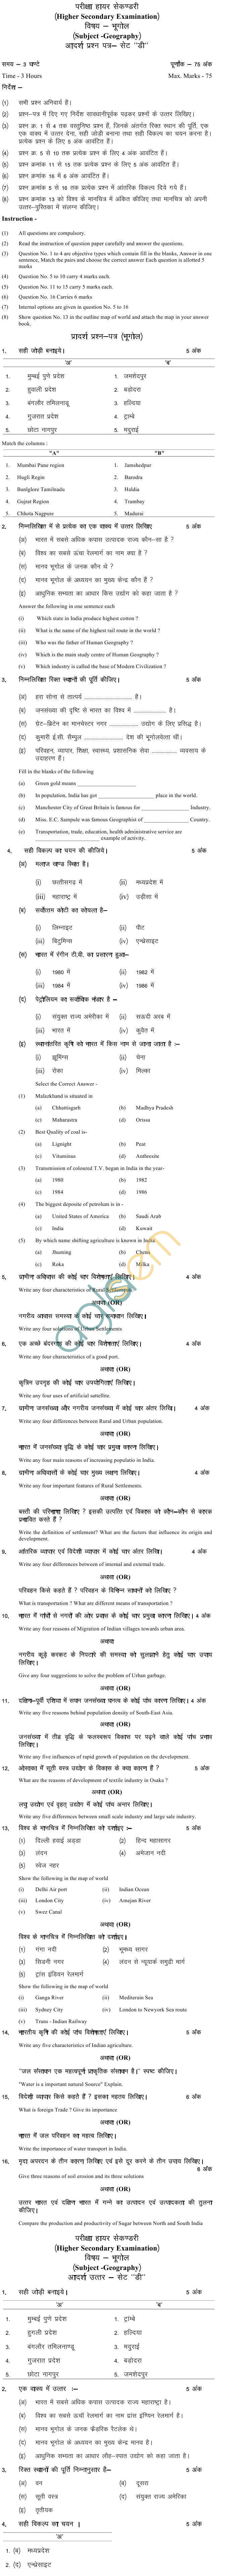 MP BoardClass XII Geography Model Questions & Answers -Set 3